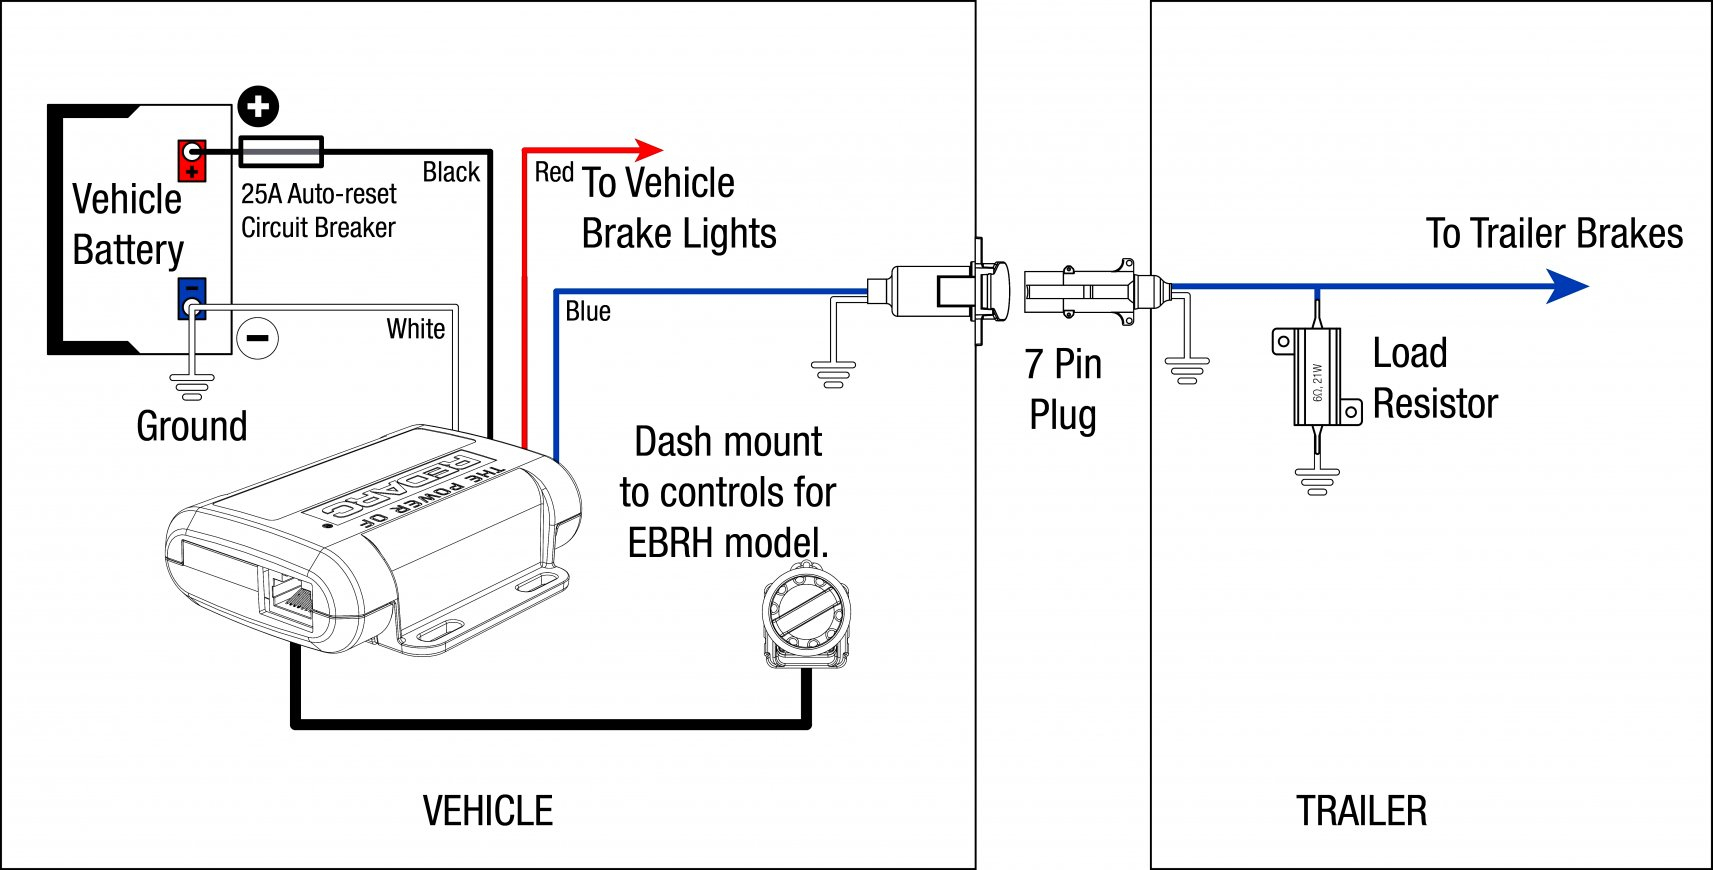 Tekonsha Brake Controller Wiring Diagram For Chevy | Wiring Diagram - Tekonsha Brake Controller Wiring Diagram